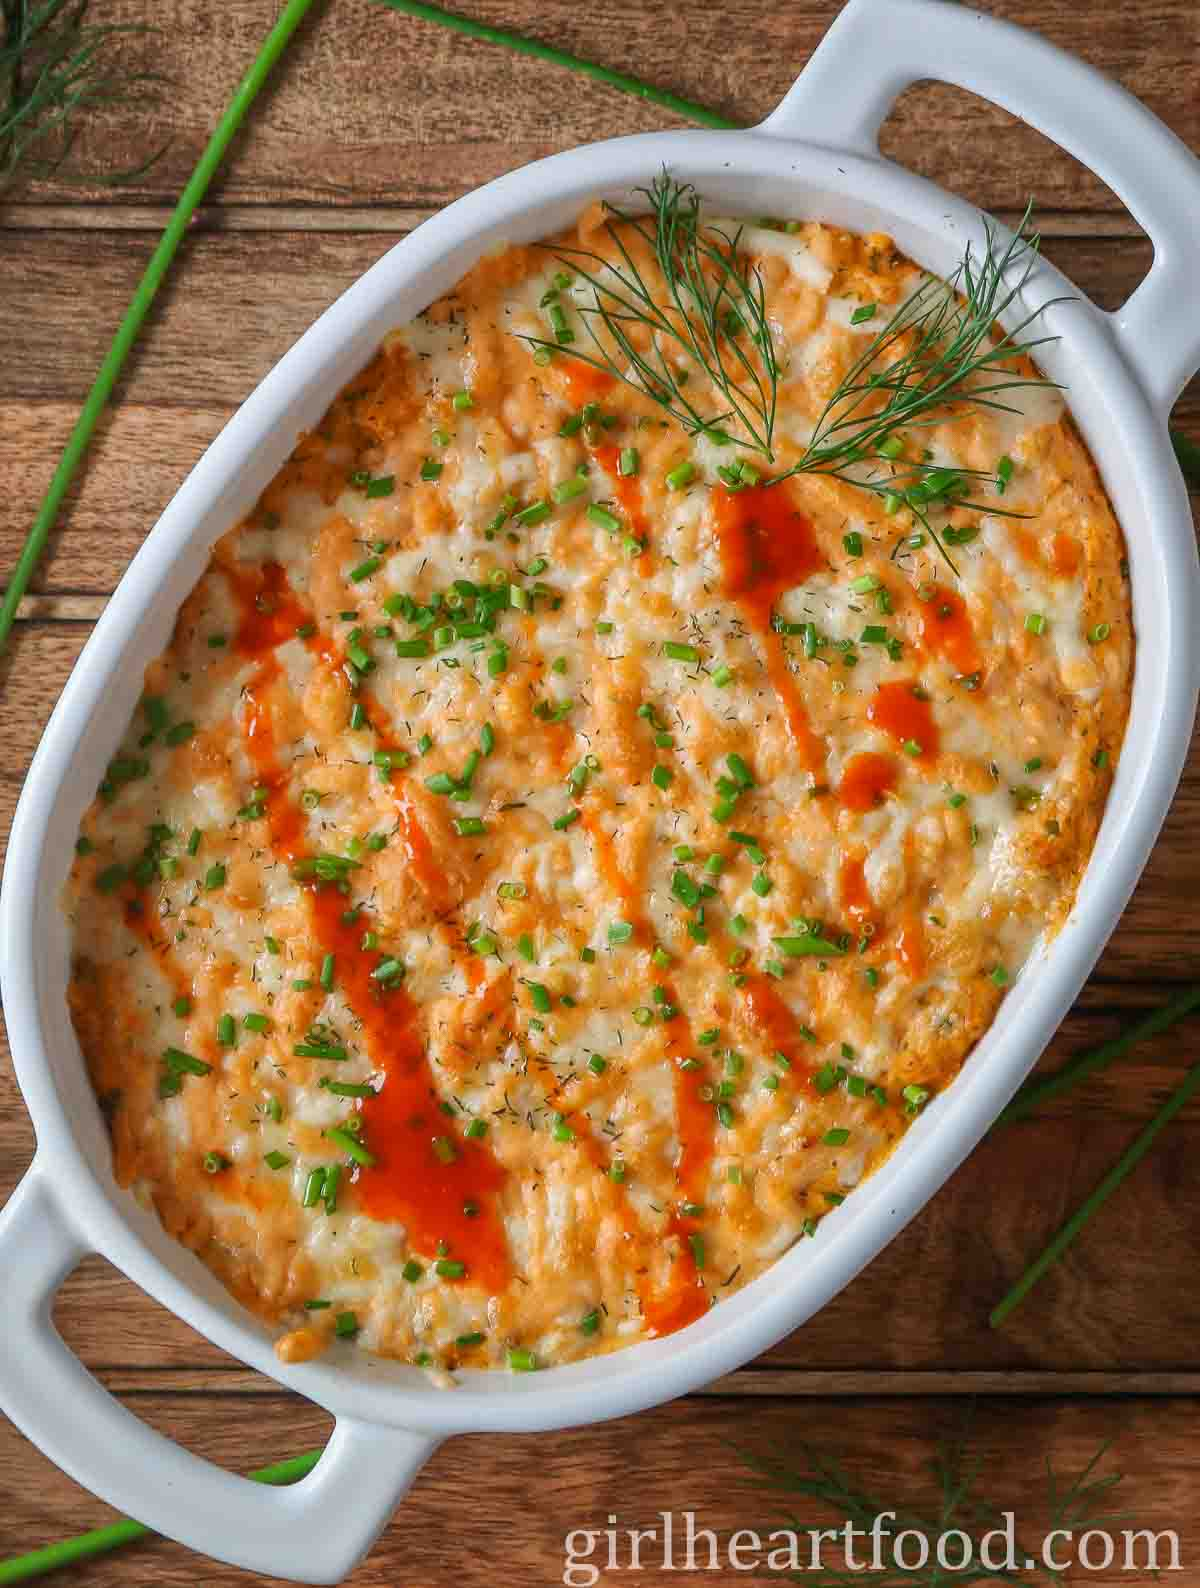 White oval dish of meatless buffalo dip.